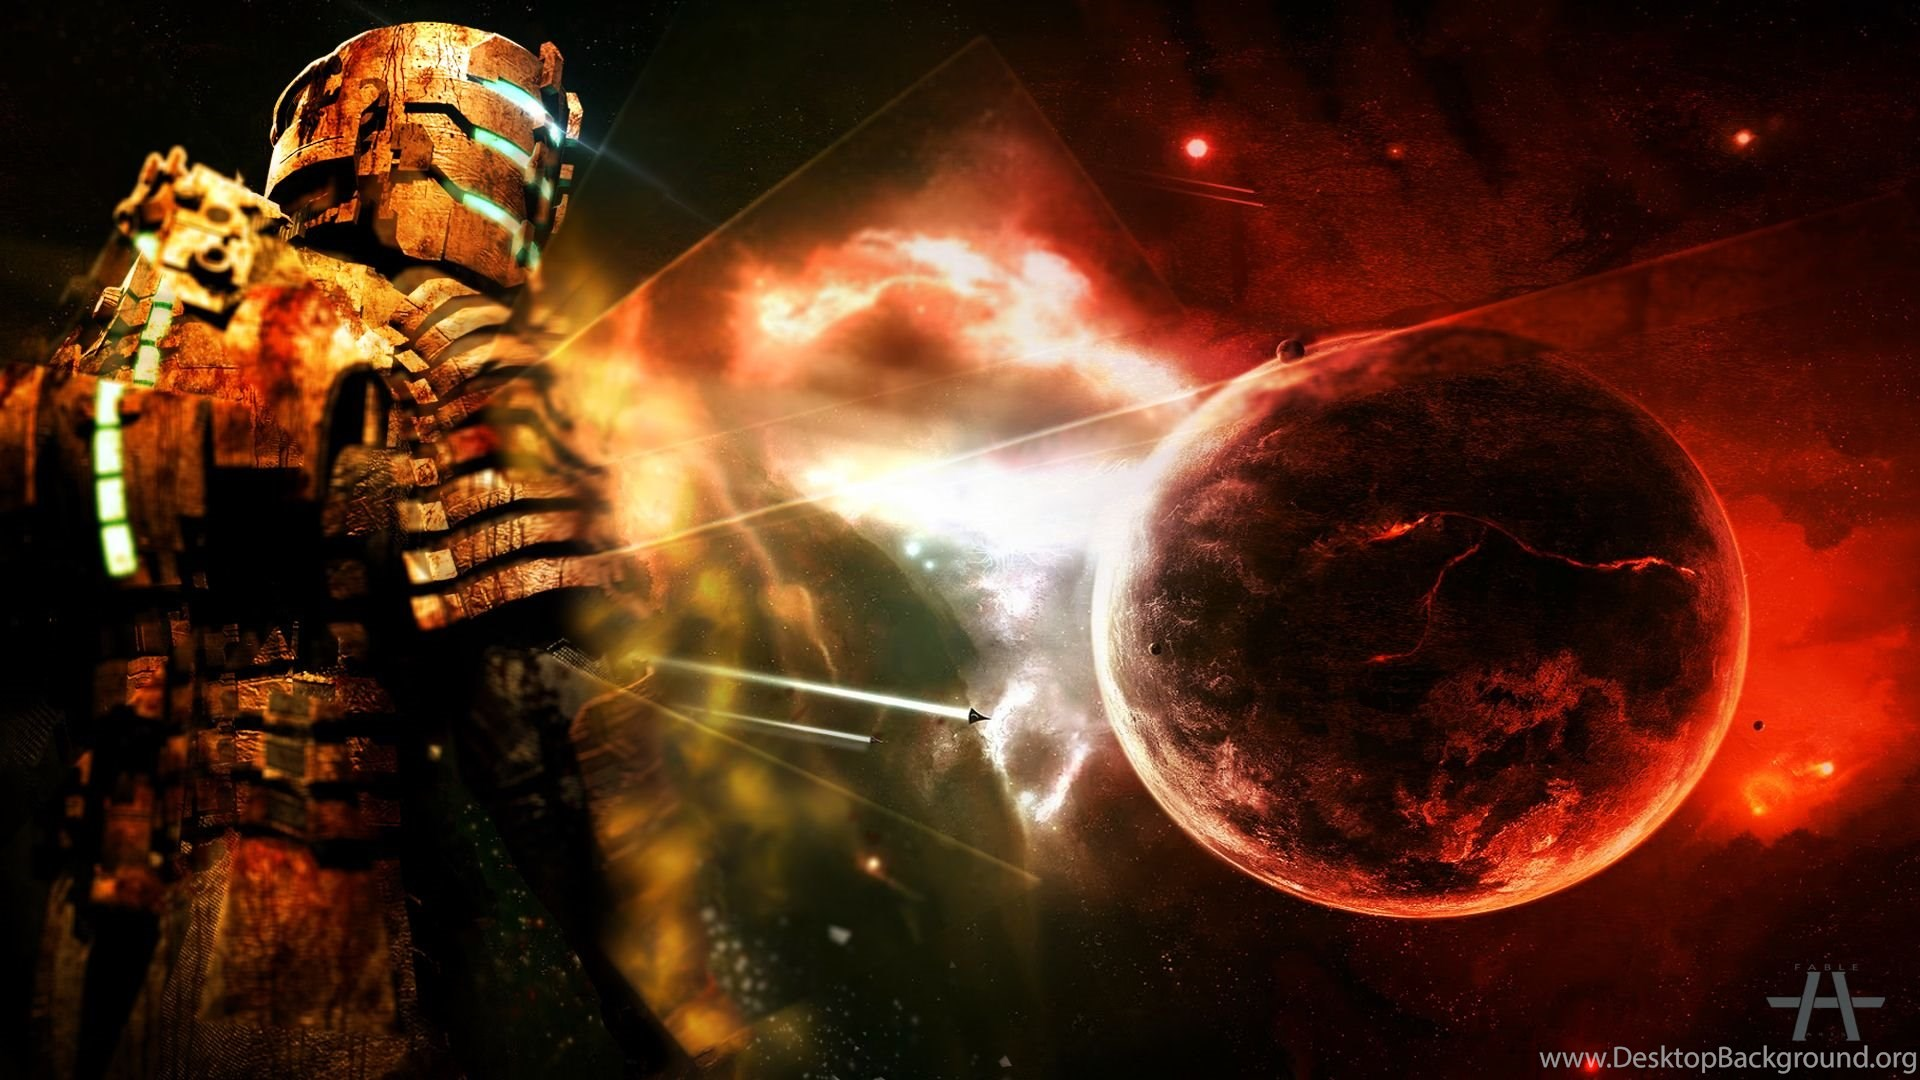 Dead Space 2 Wallpapers 1920x1080 By Jimjim617 On Deviantart